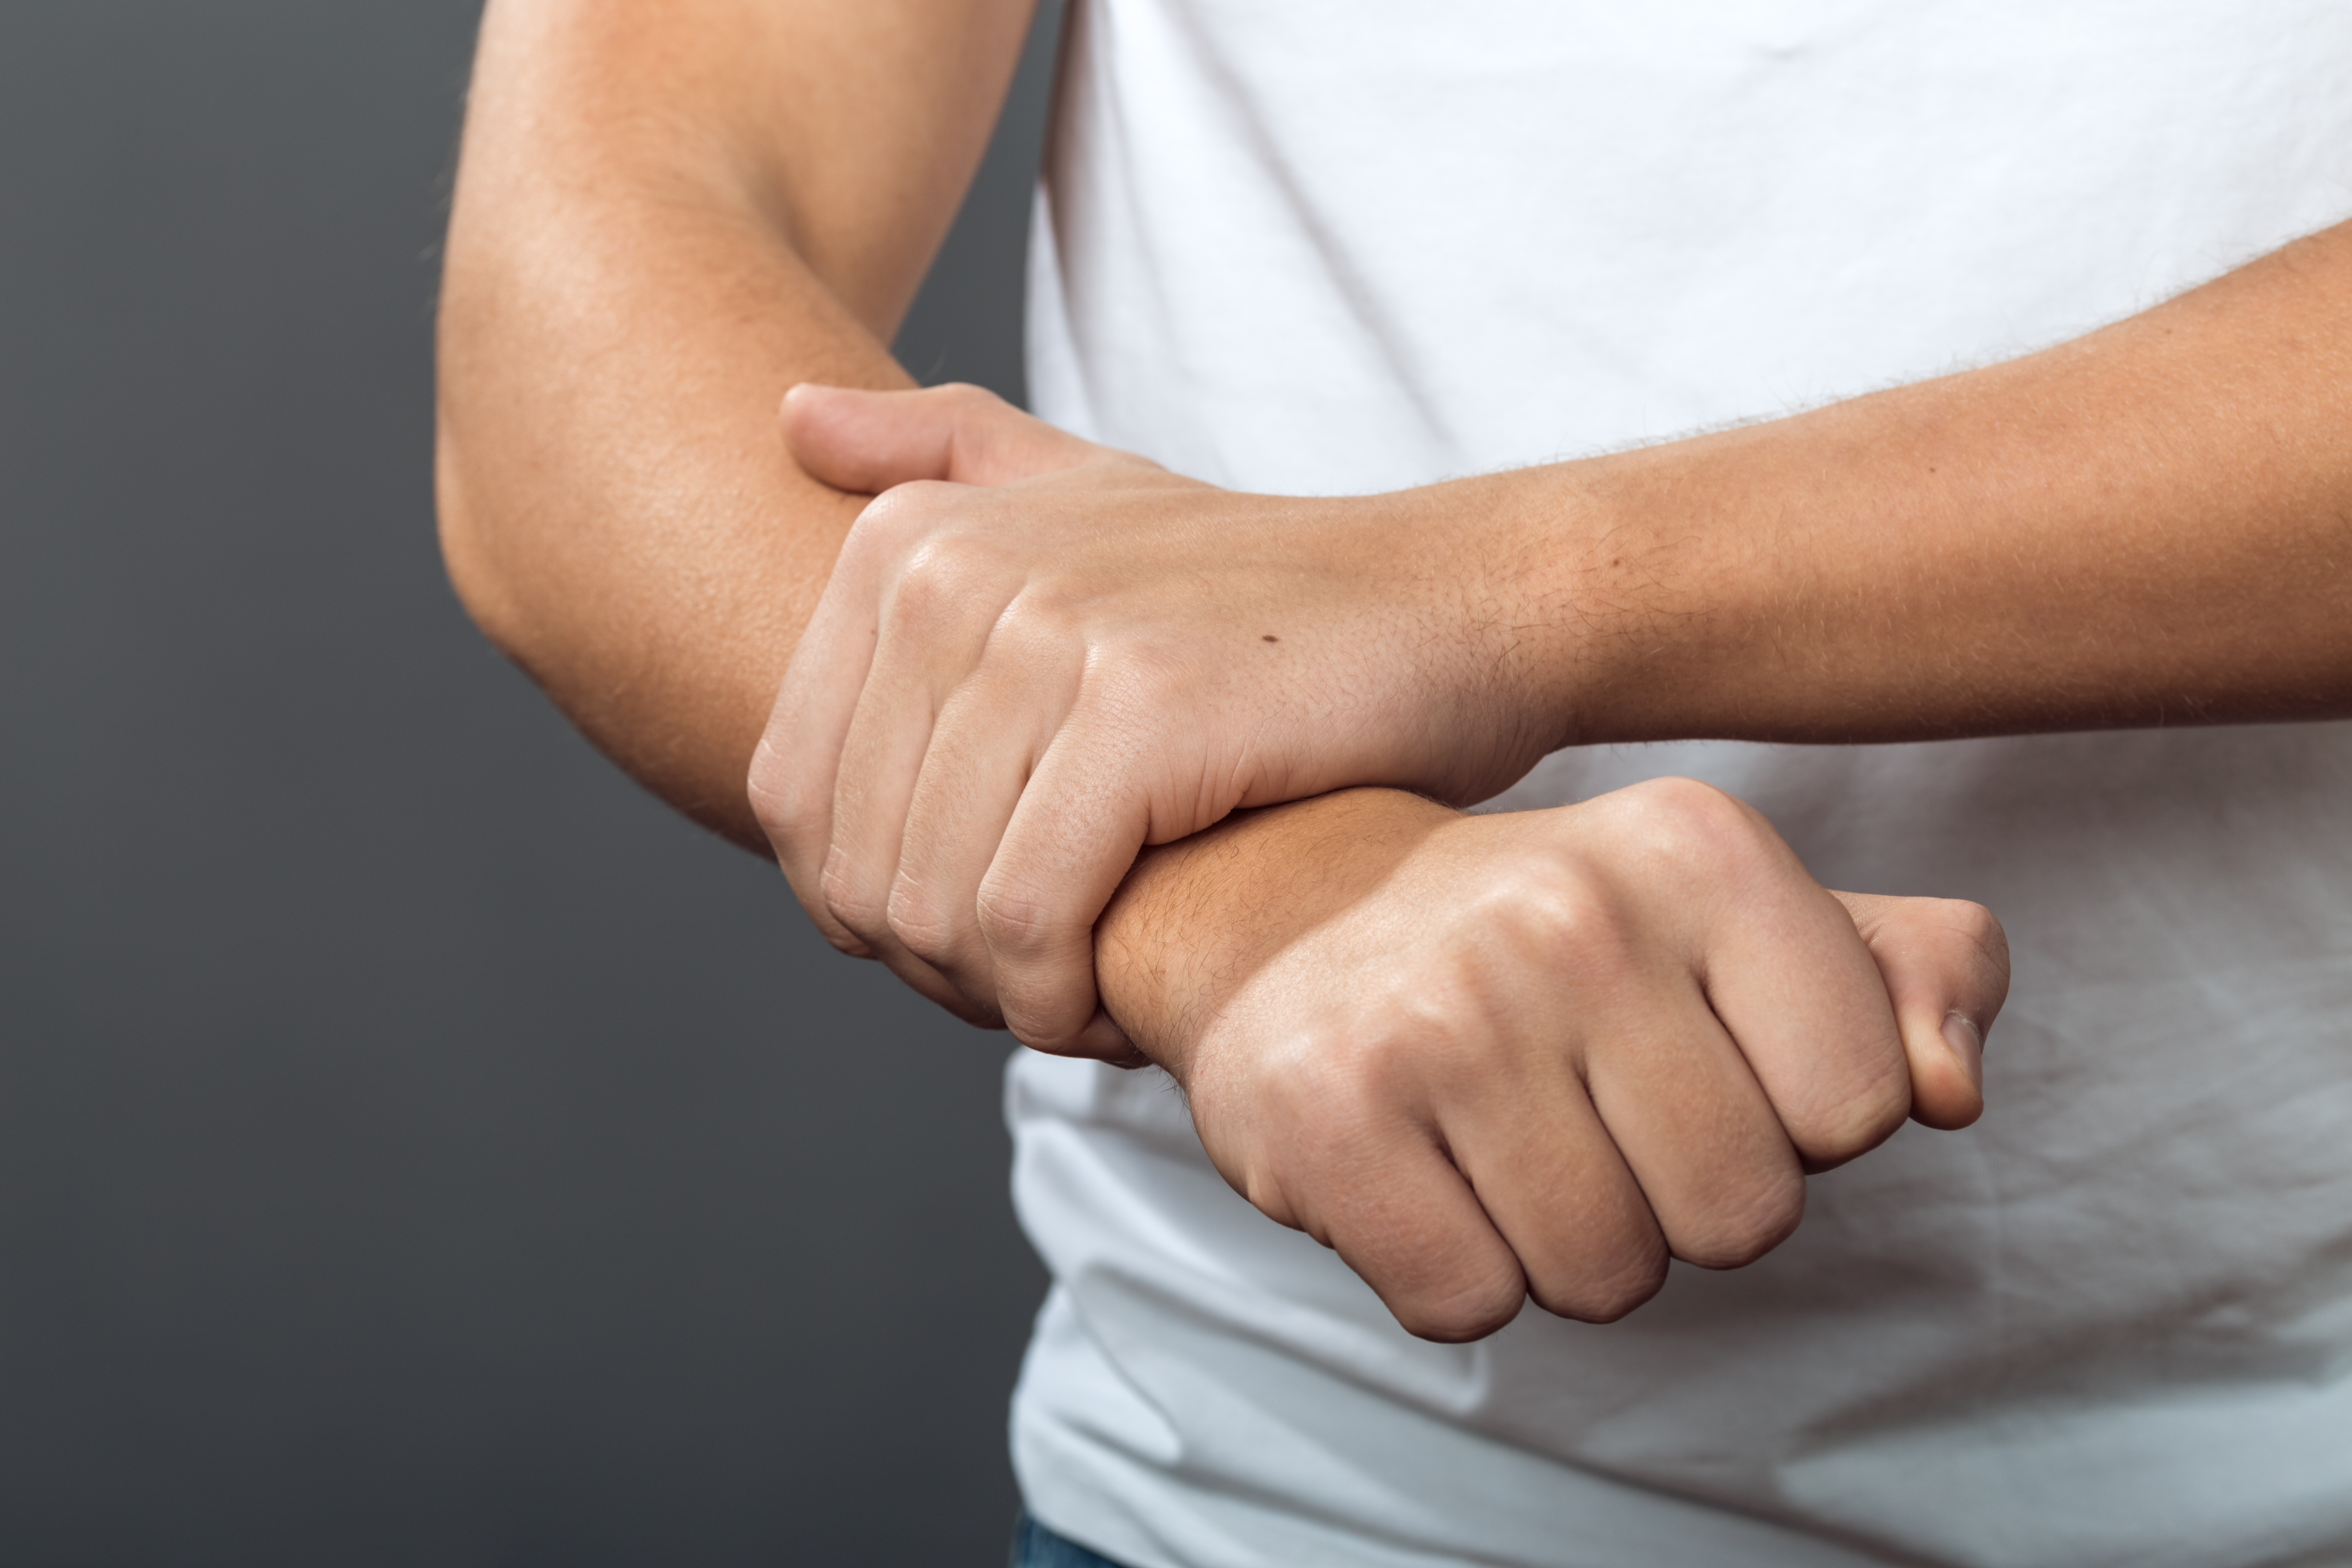 How Painful Is Pronator Teres Syndrome?